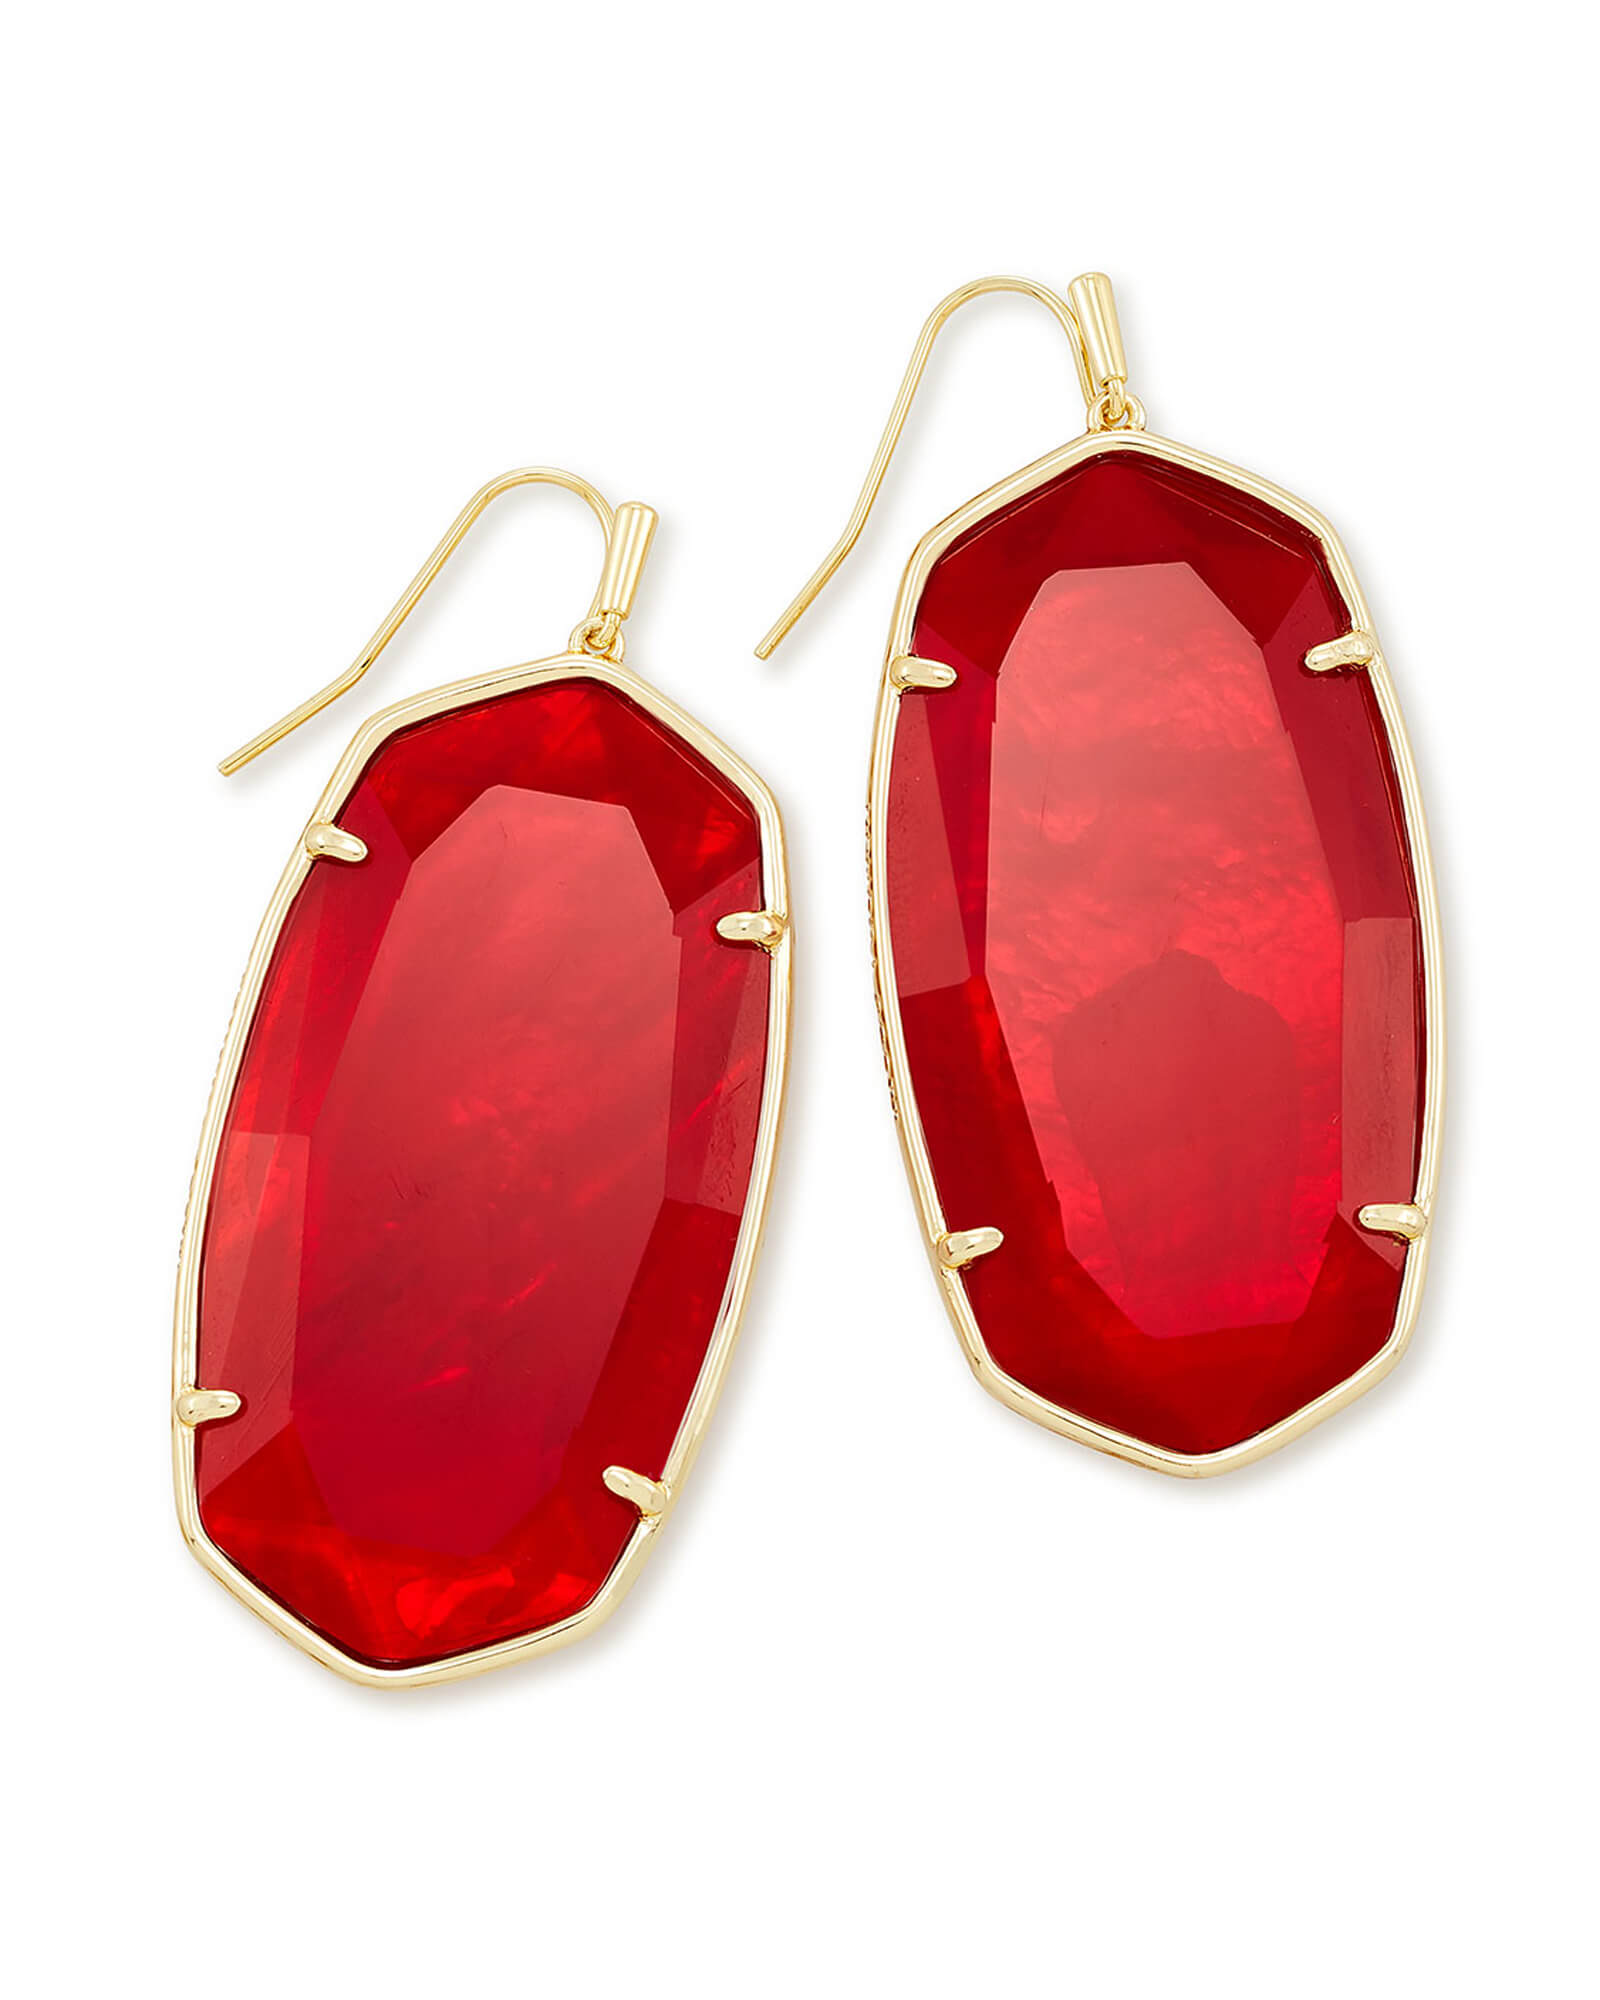 Faceted Danielle Gold Statement Earrings in Cherry Red Illusion